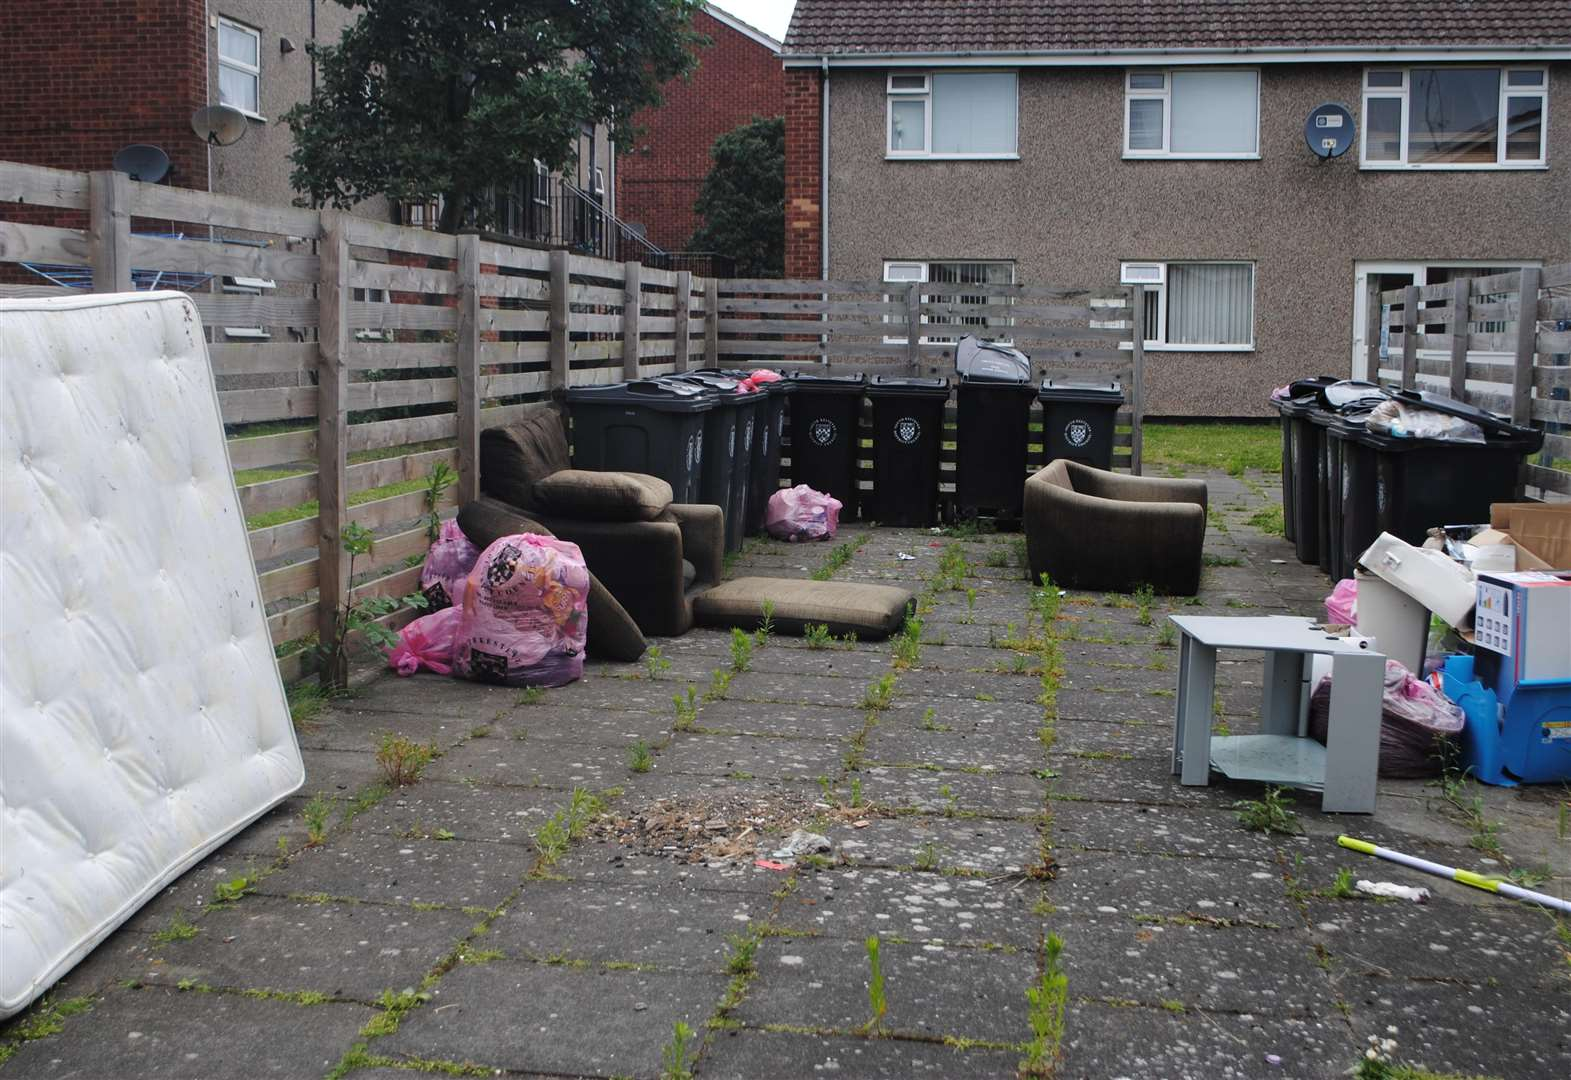 Neighbours' anger at overflowing bins on Grantham street